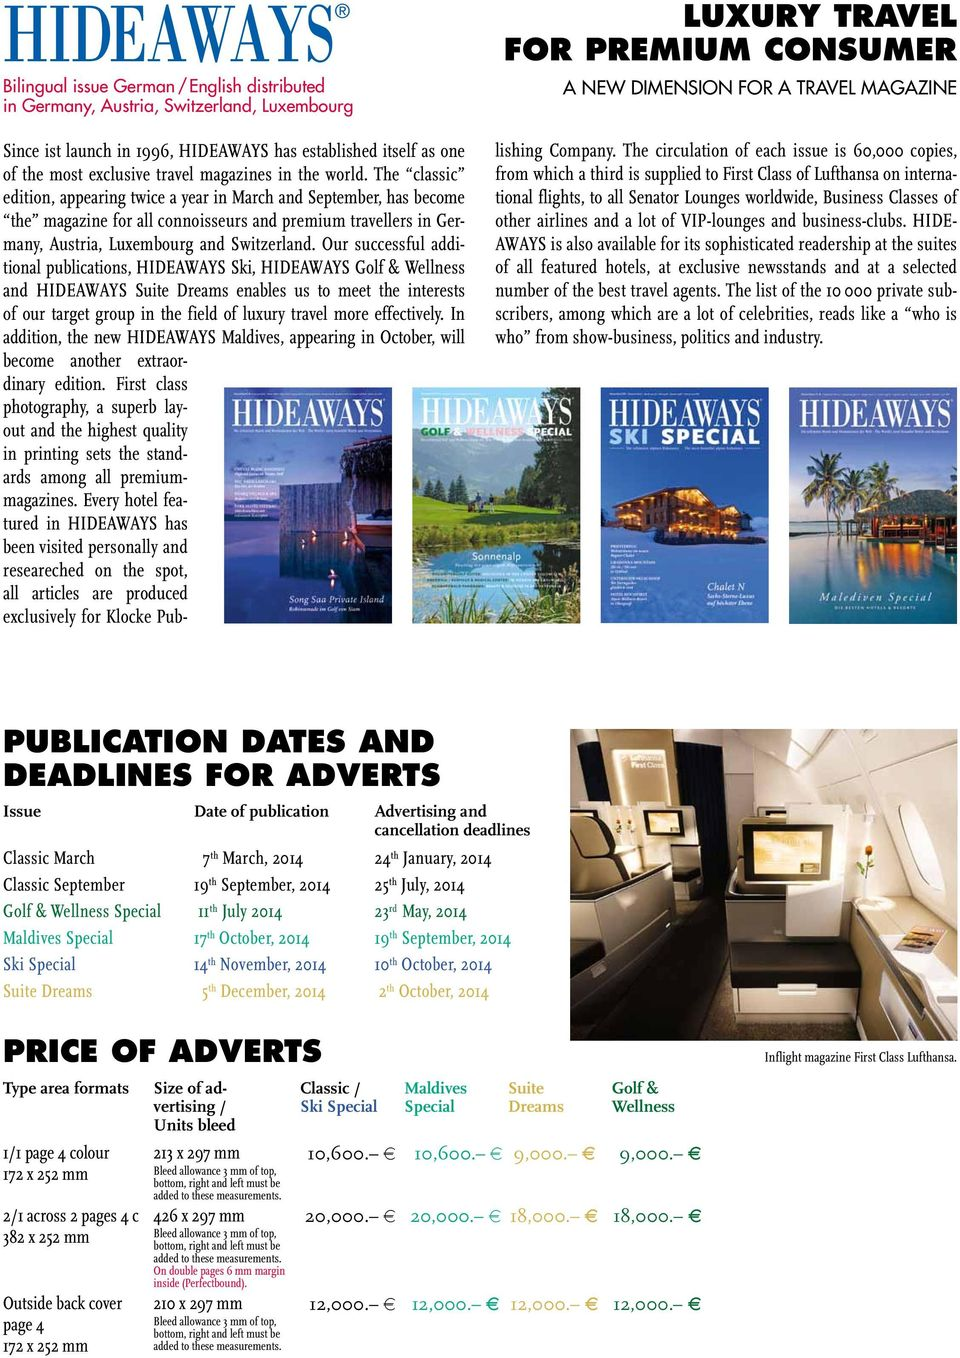 The classic edition, appearing twice a year in March and September, has become the magazine for all connoisseurs and premium travellers in Germany, Austria, Luxembourg and Switzerland.